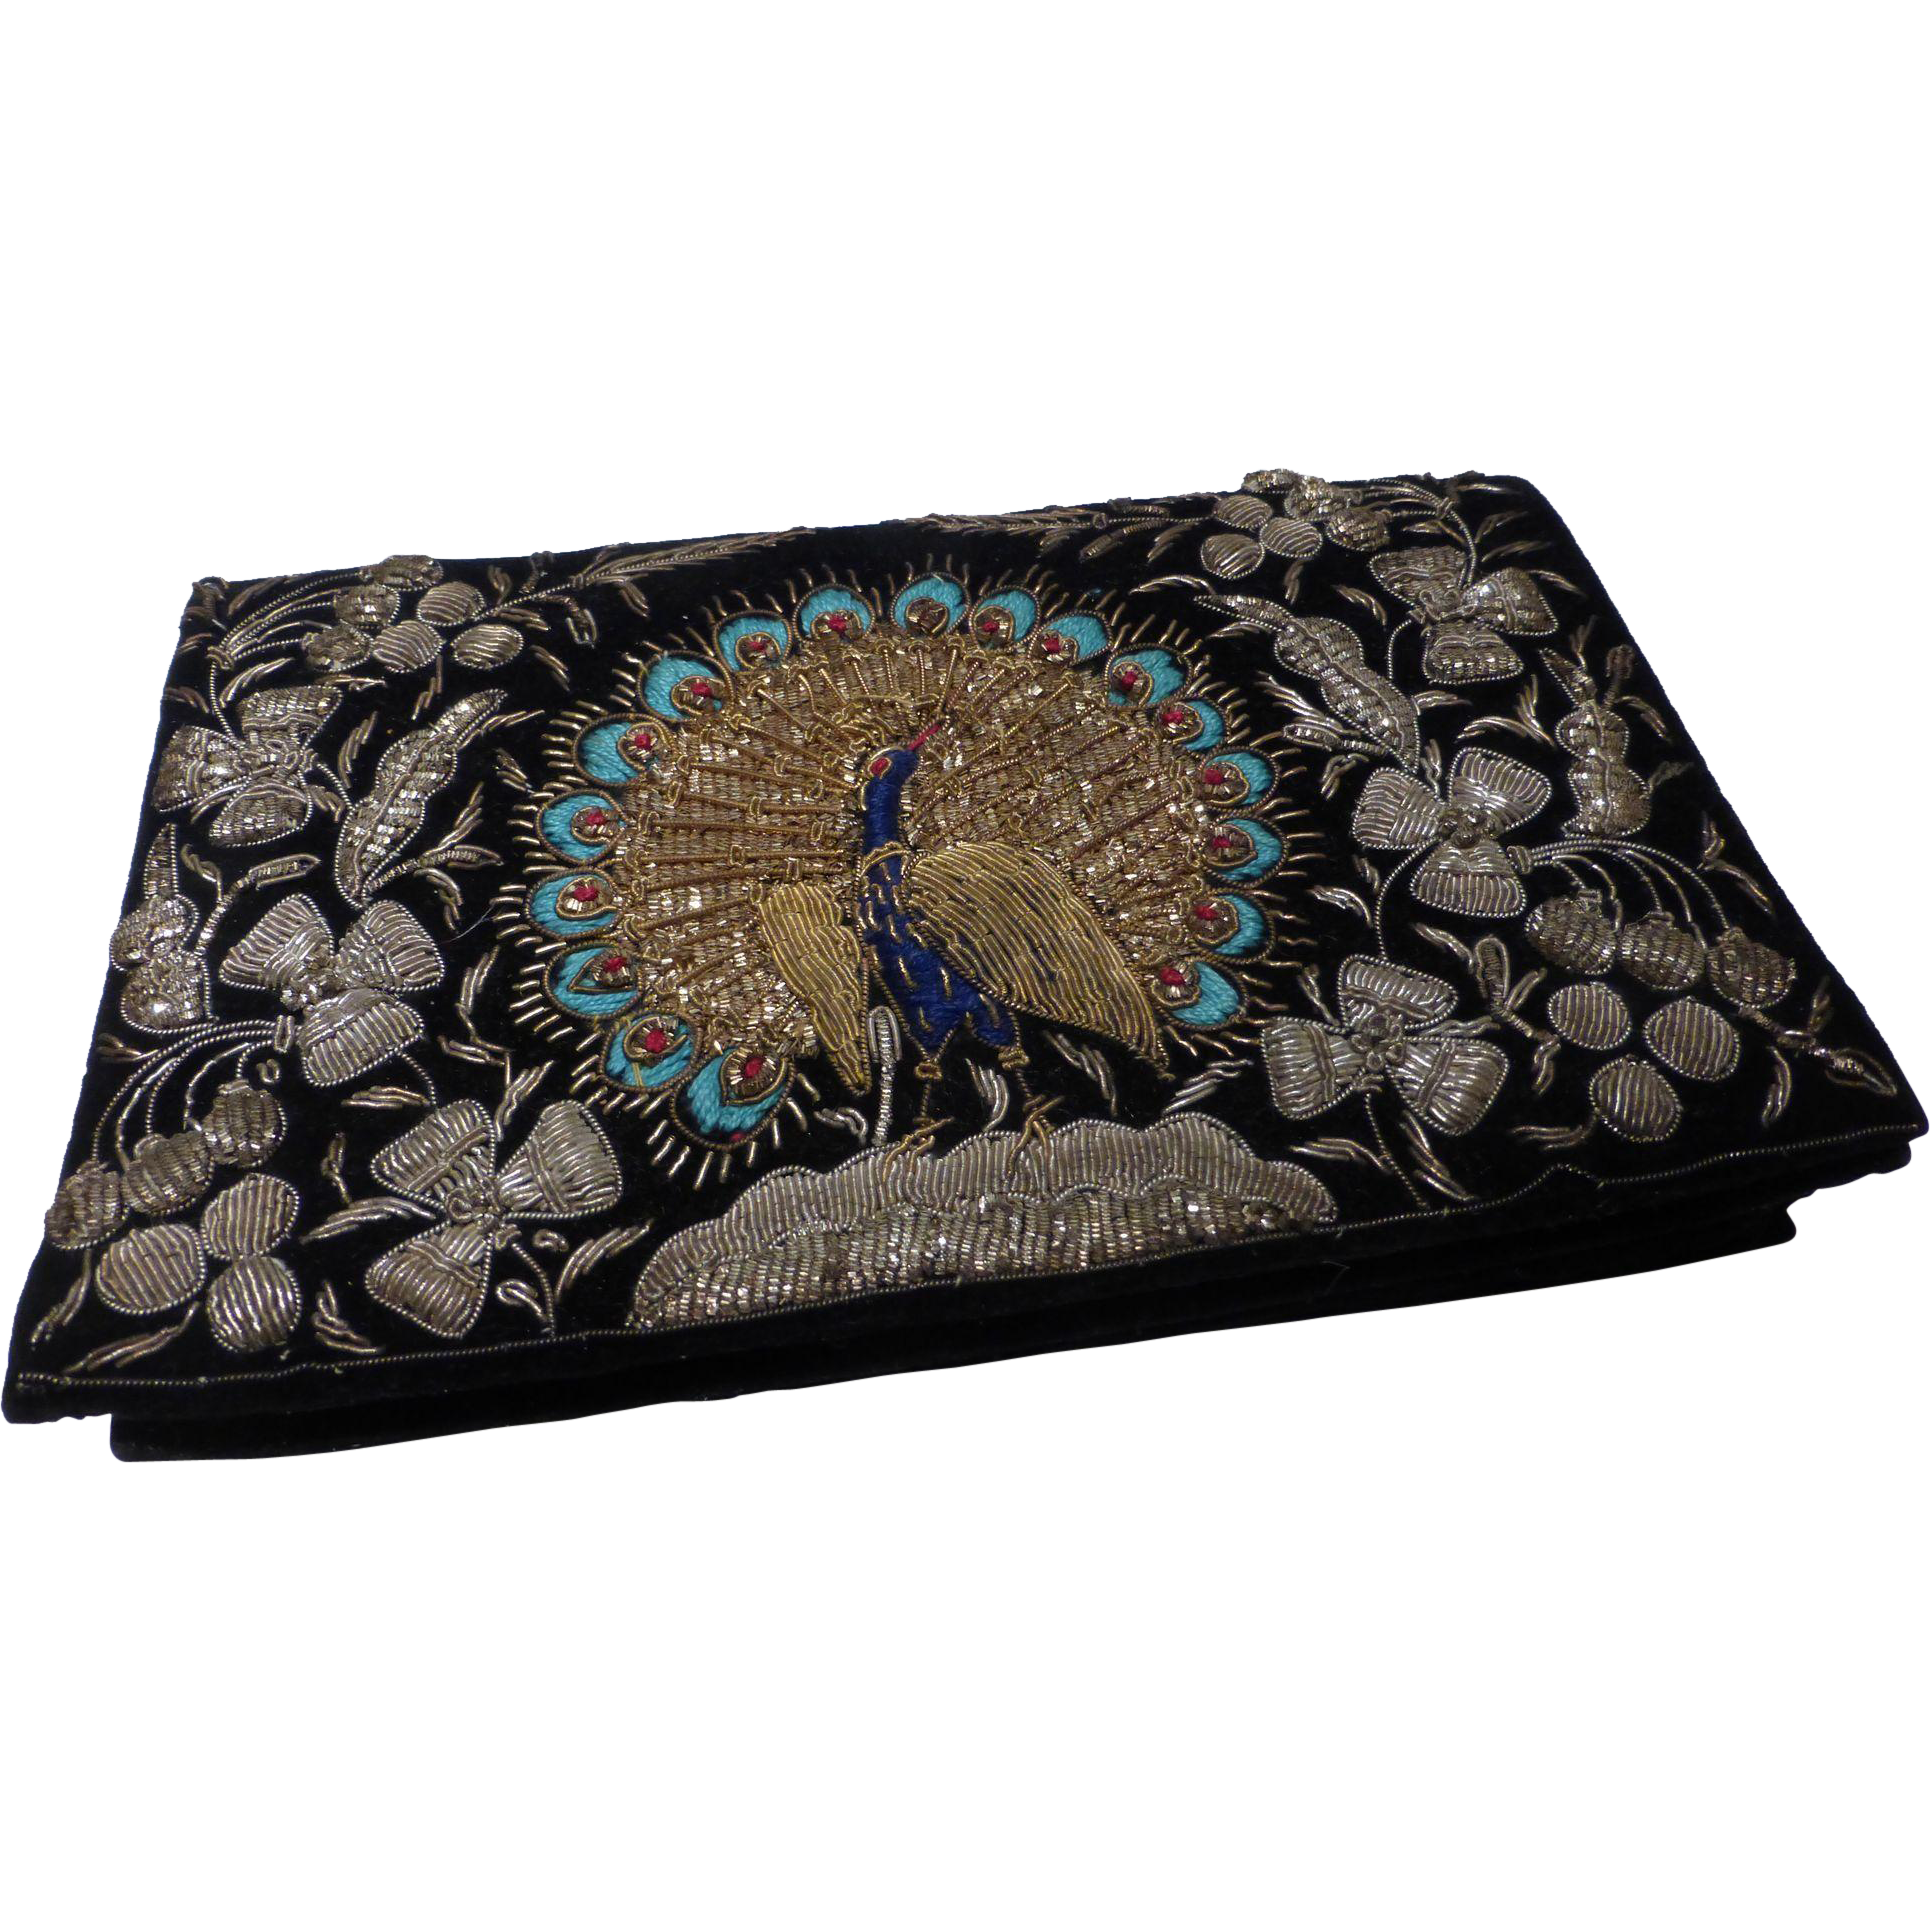 Vintage metal embroidery peacock clutch purse handbag from